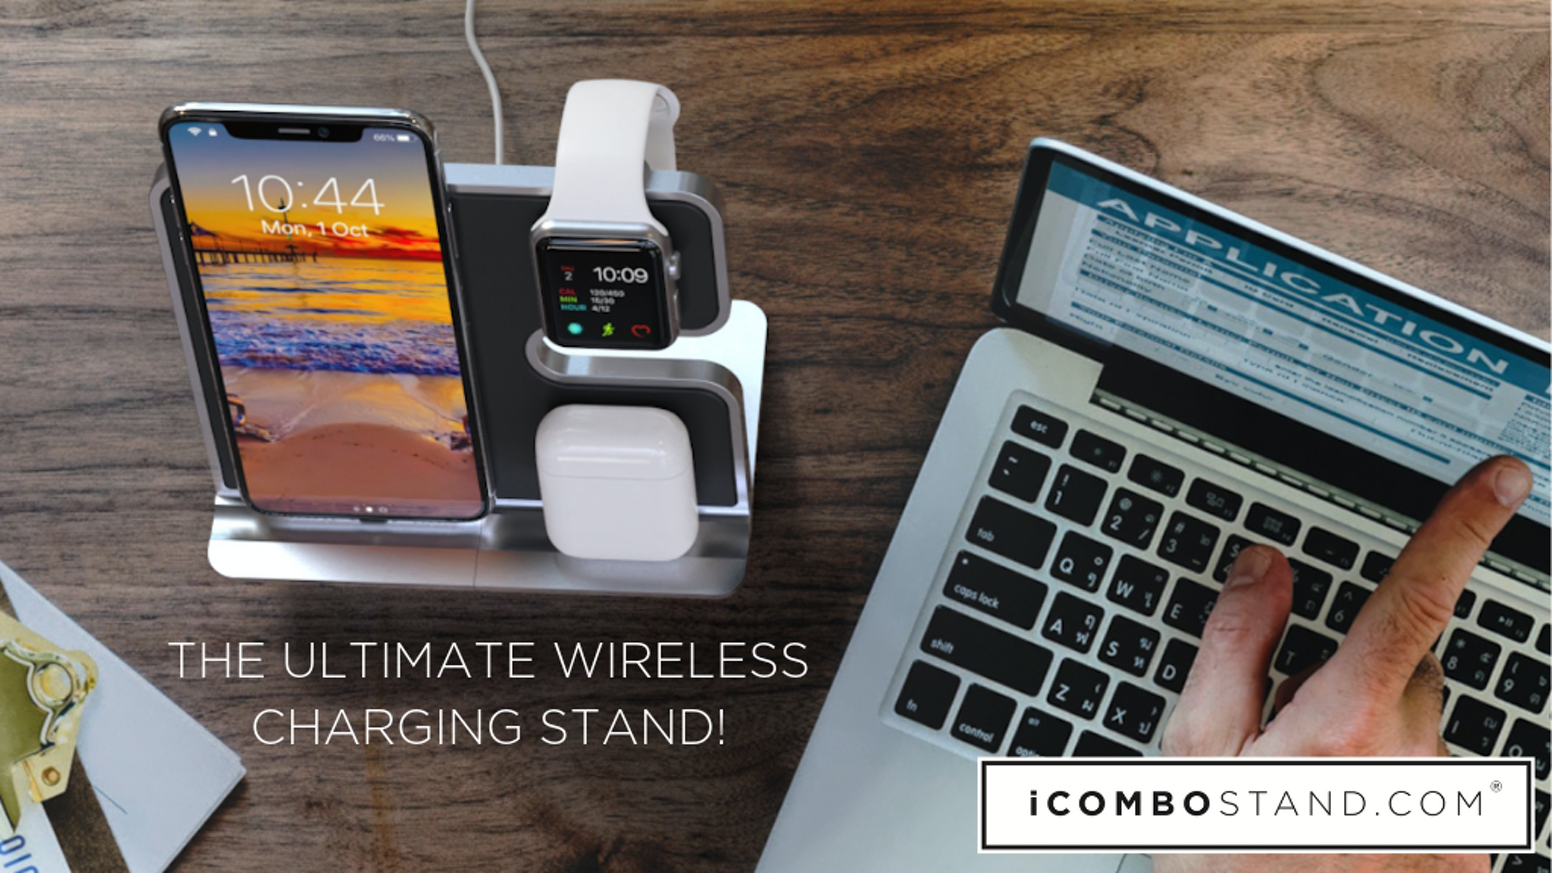 Wireless Qi Charging For Your iPhone, Apple Watch, AirPods With A Bonus USB Port For A Fourth Device. That's Right, Just Place On Stand